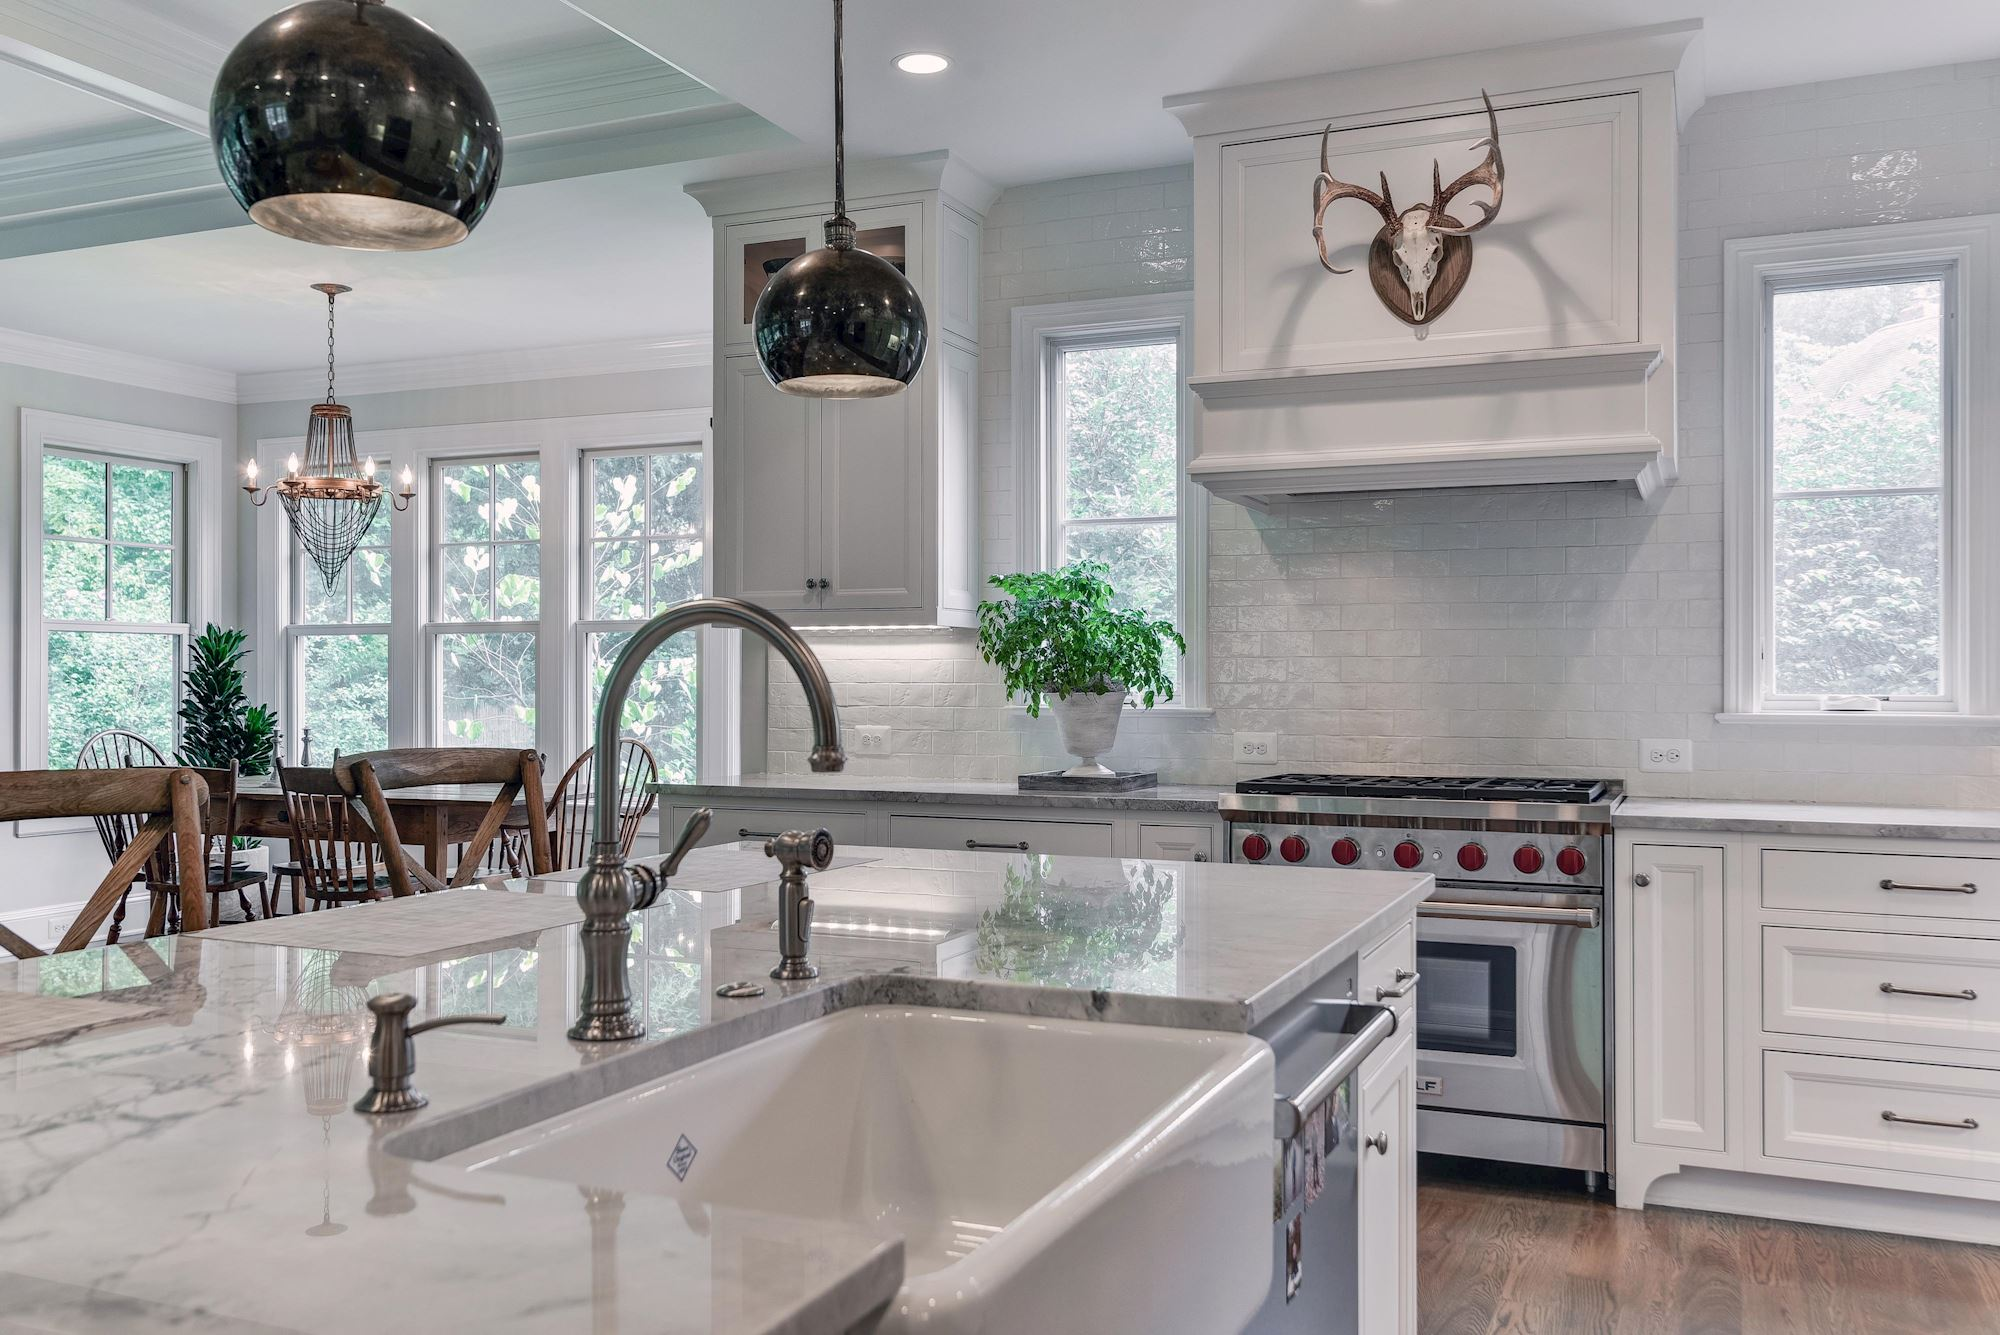 GREATJONES-35TH-KITCHEN-8.jpg